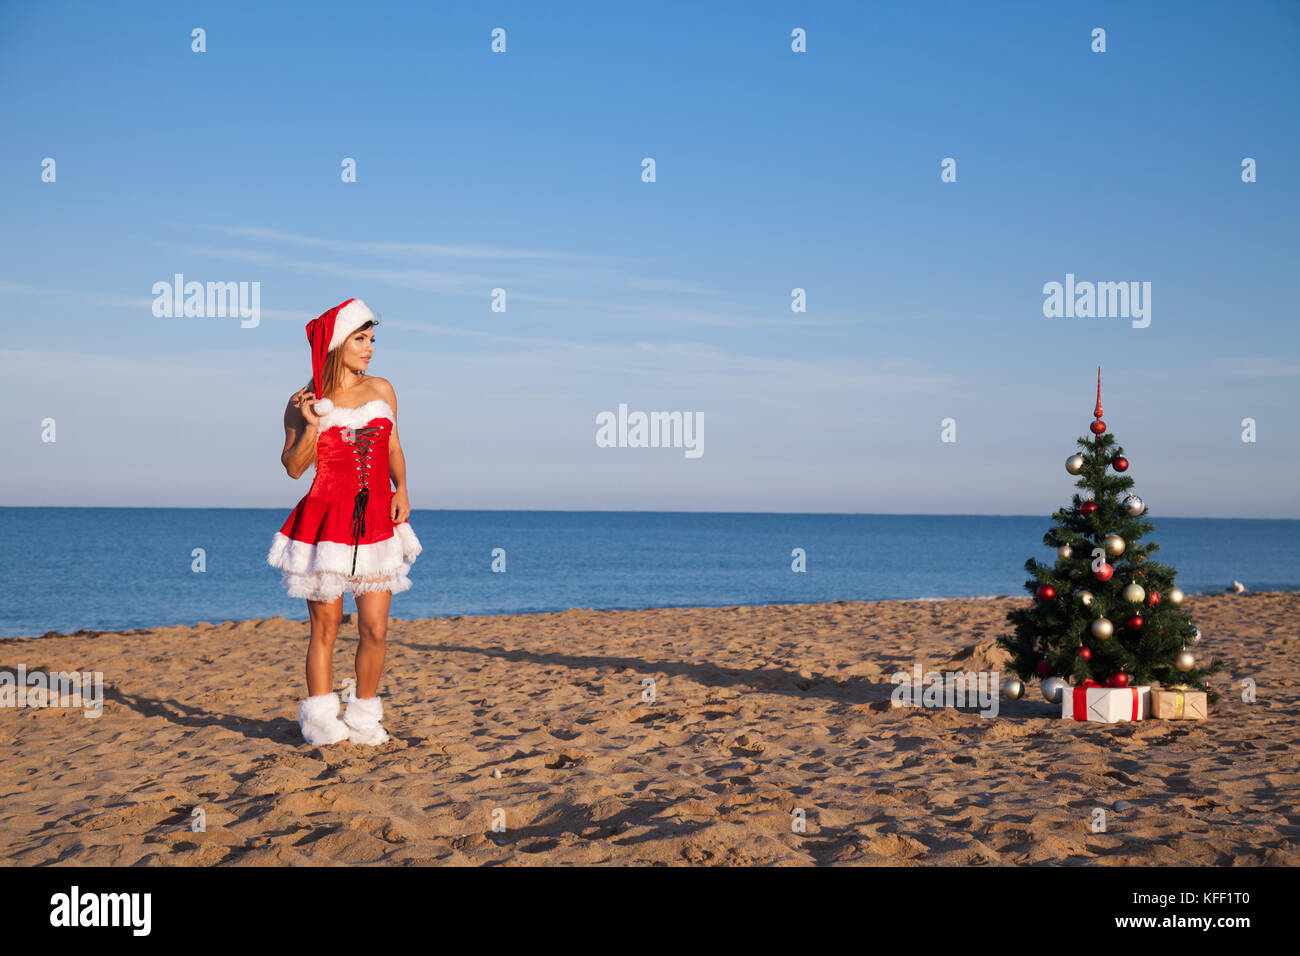 3608153a81 girl on the beach on Christmas and new year at the resort - Stock Image